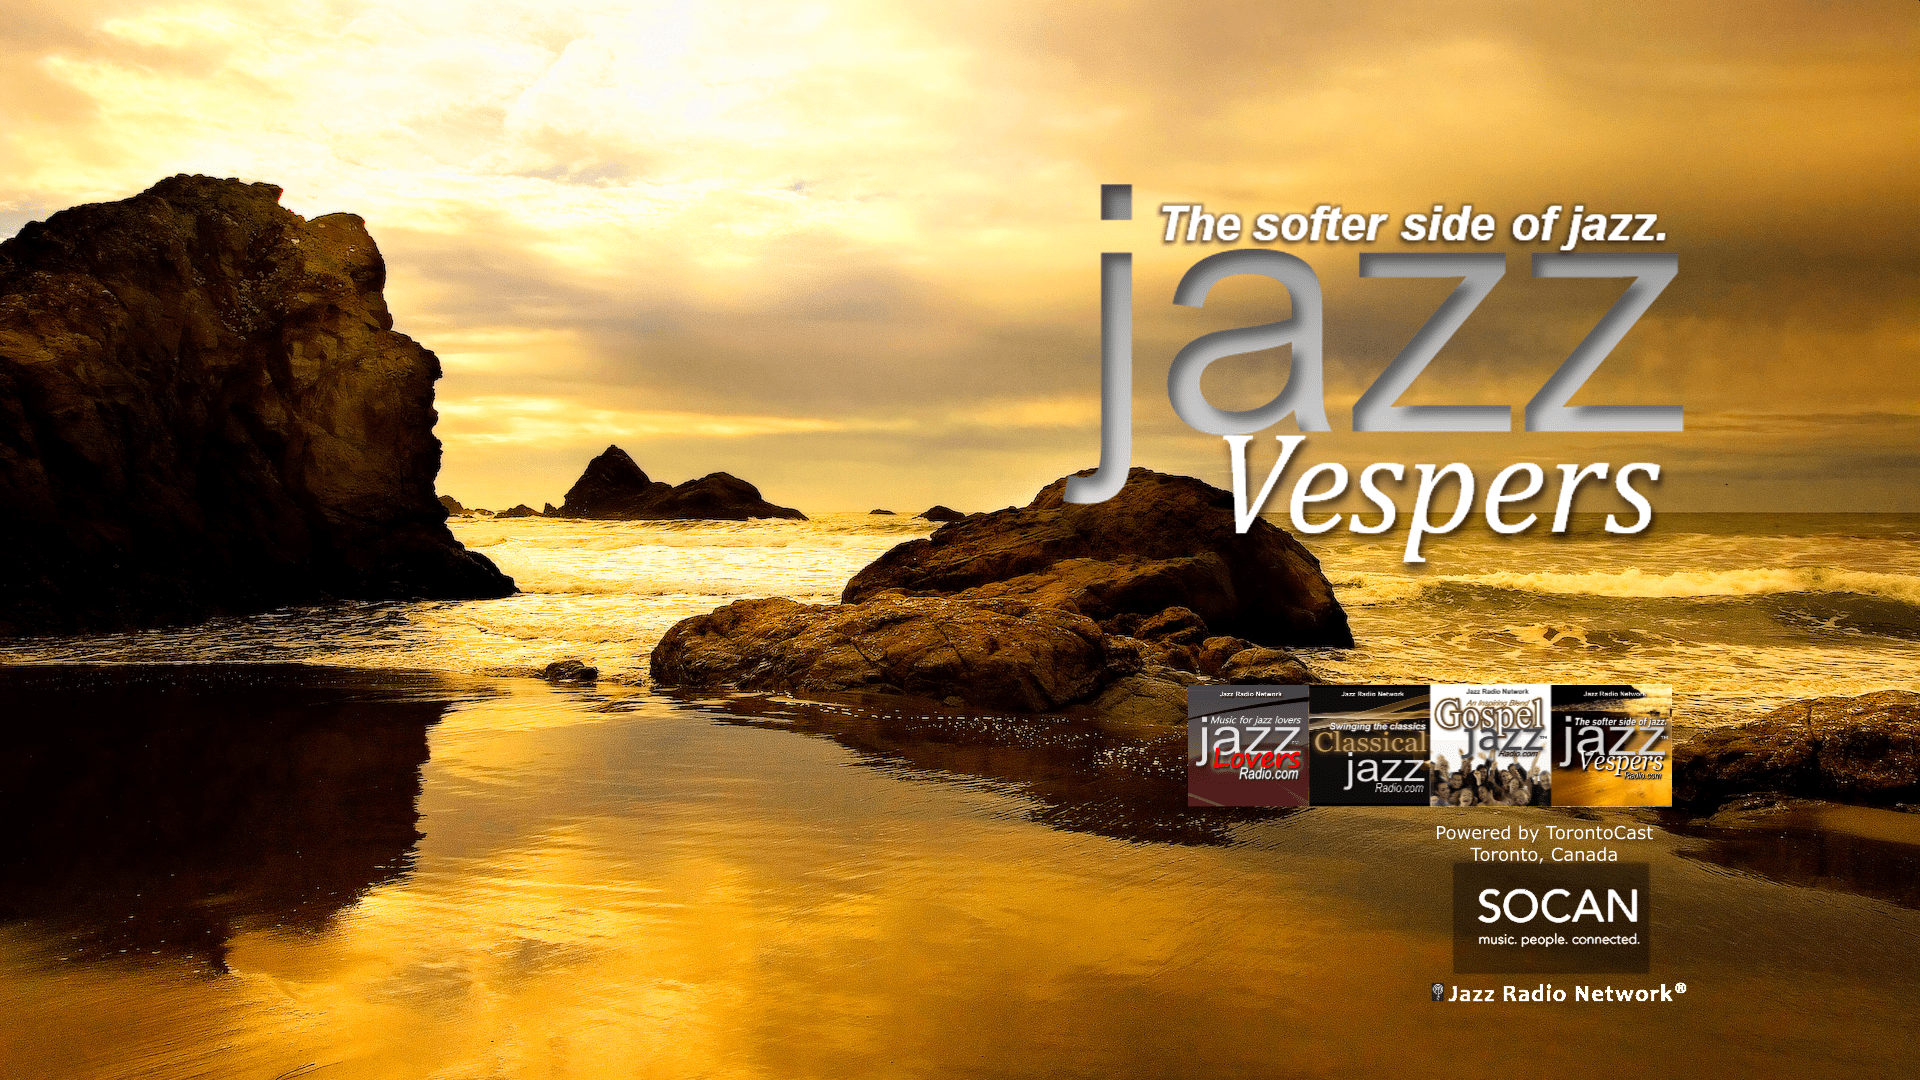 A service of Jazz Radiio Network